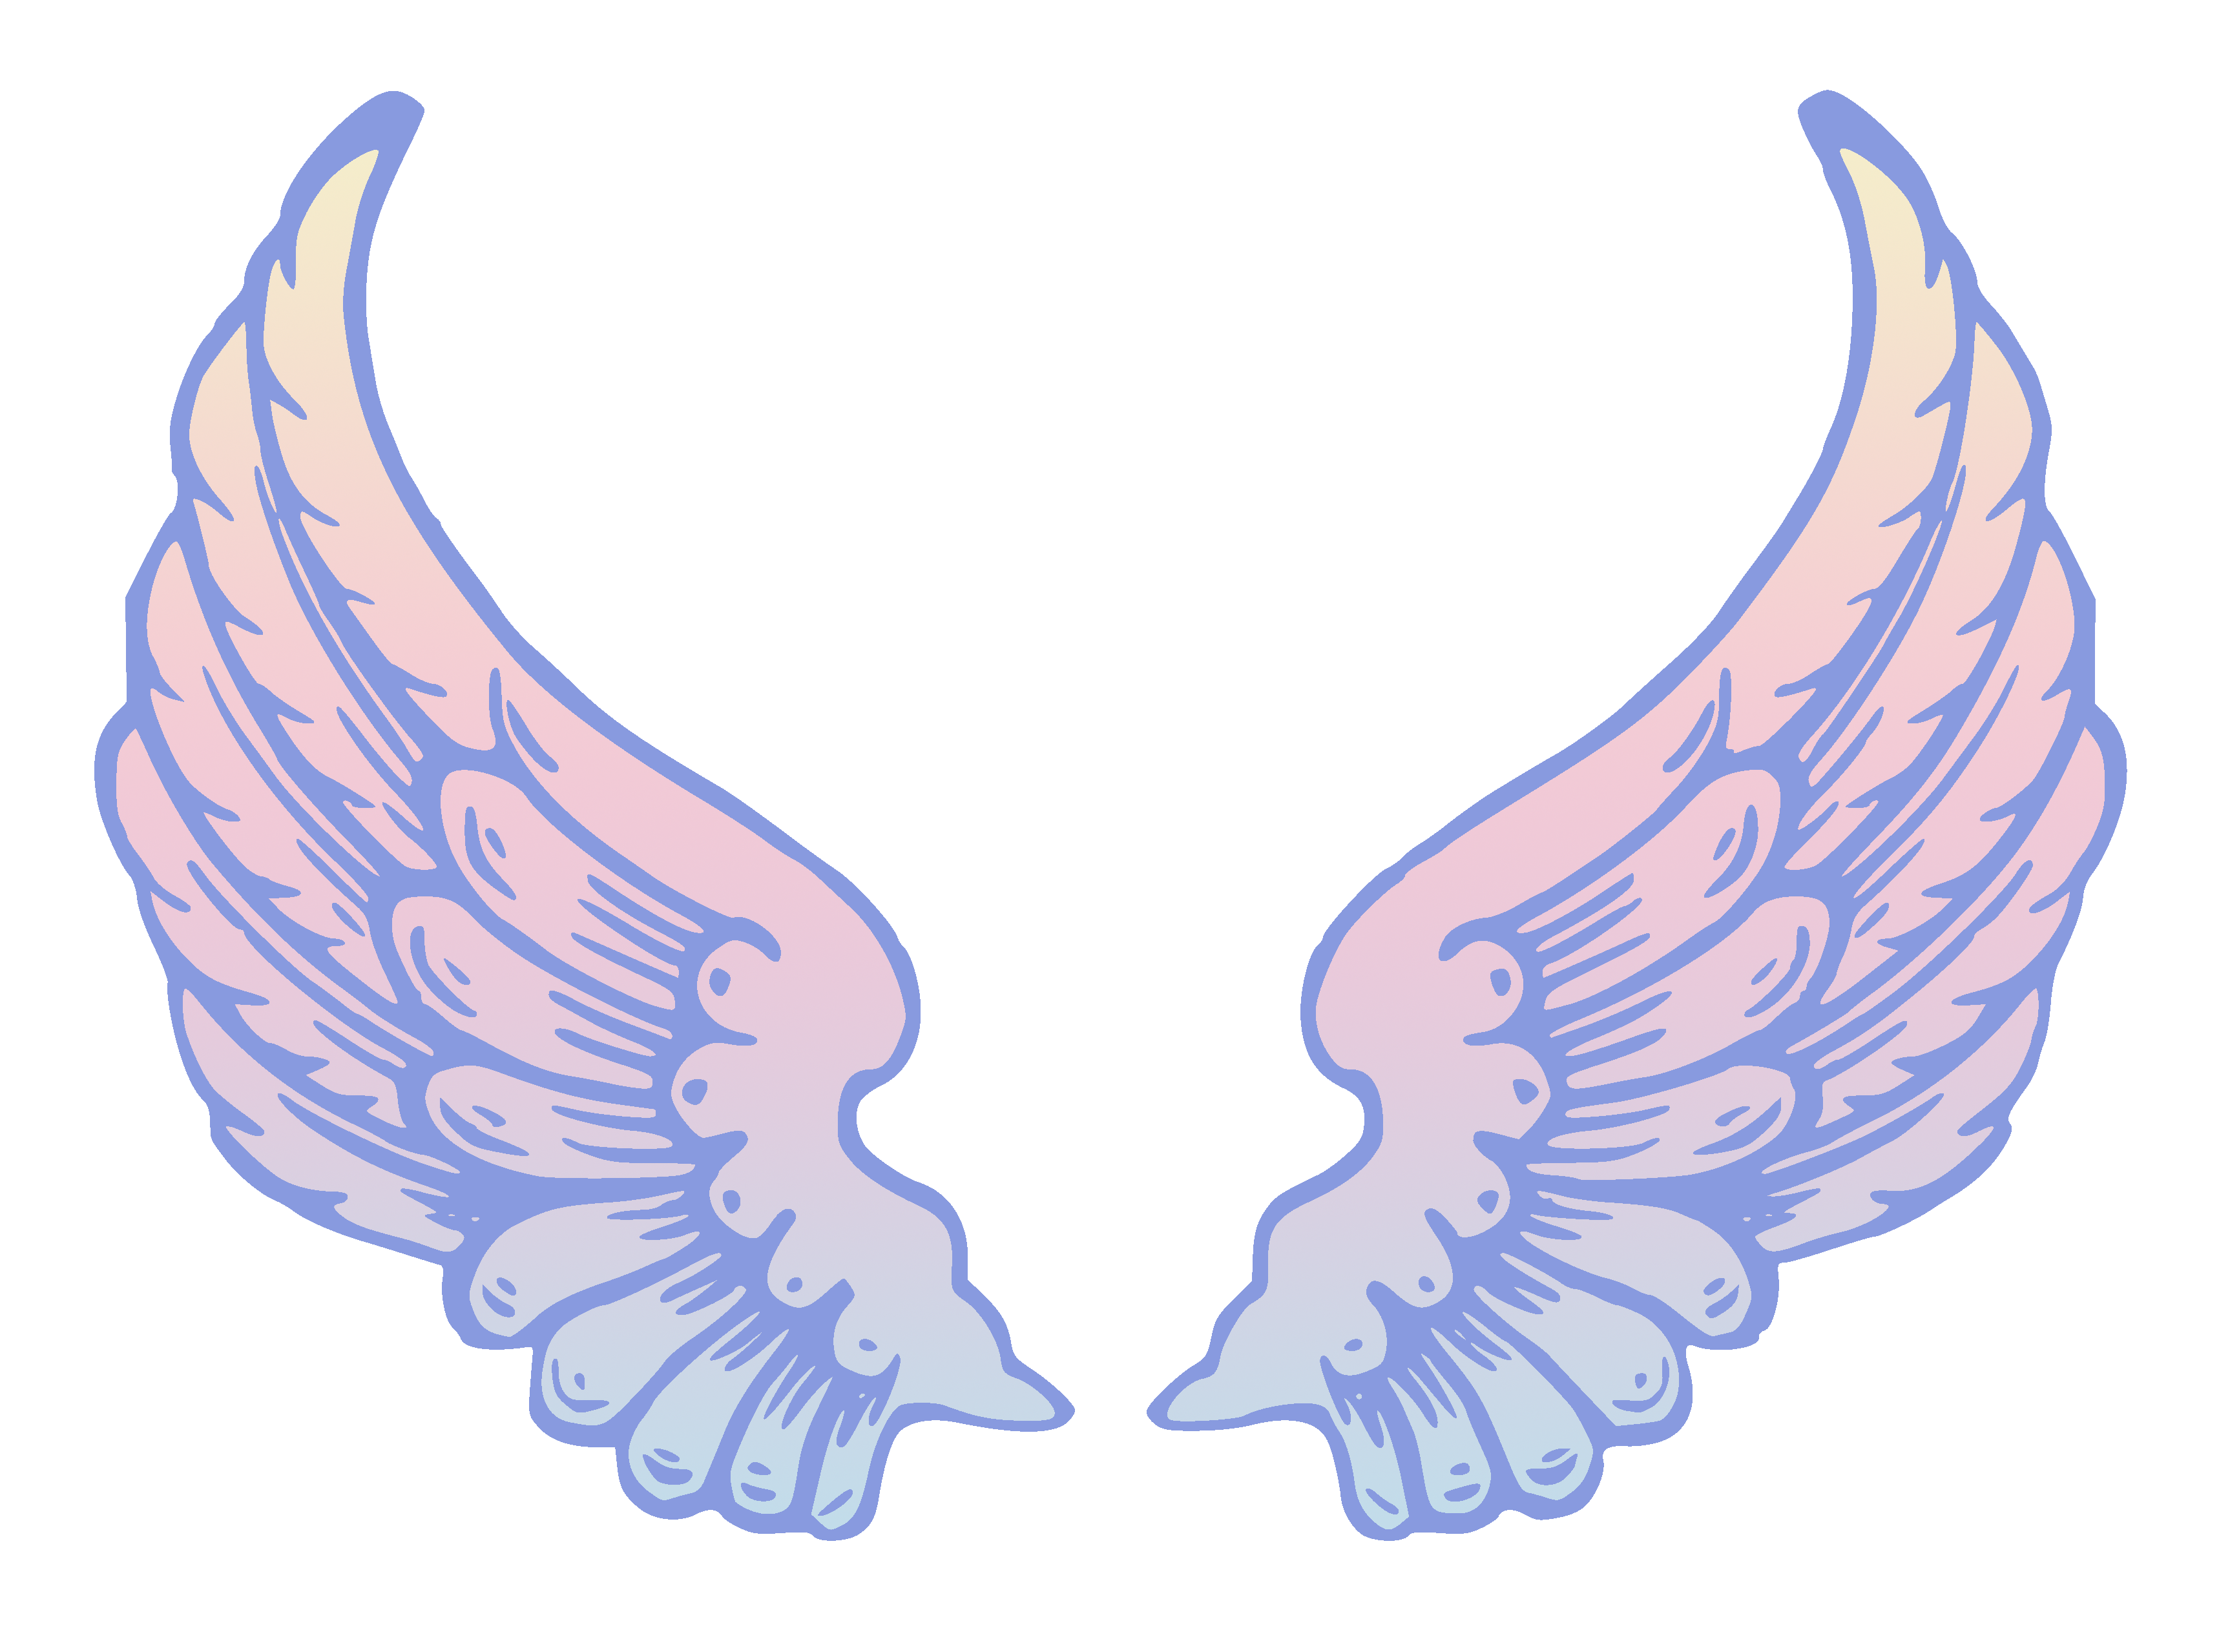 Wings lightwing co page. Words clipart angel